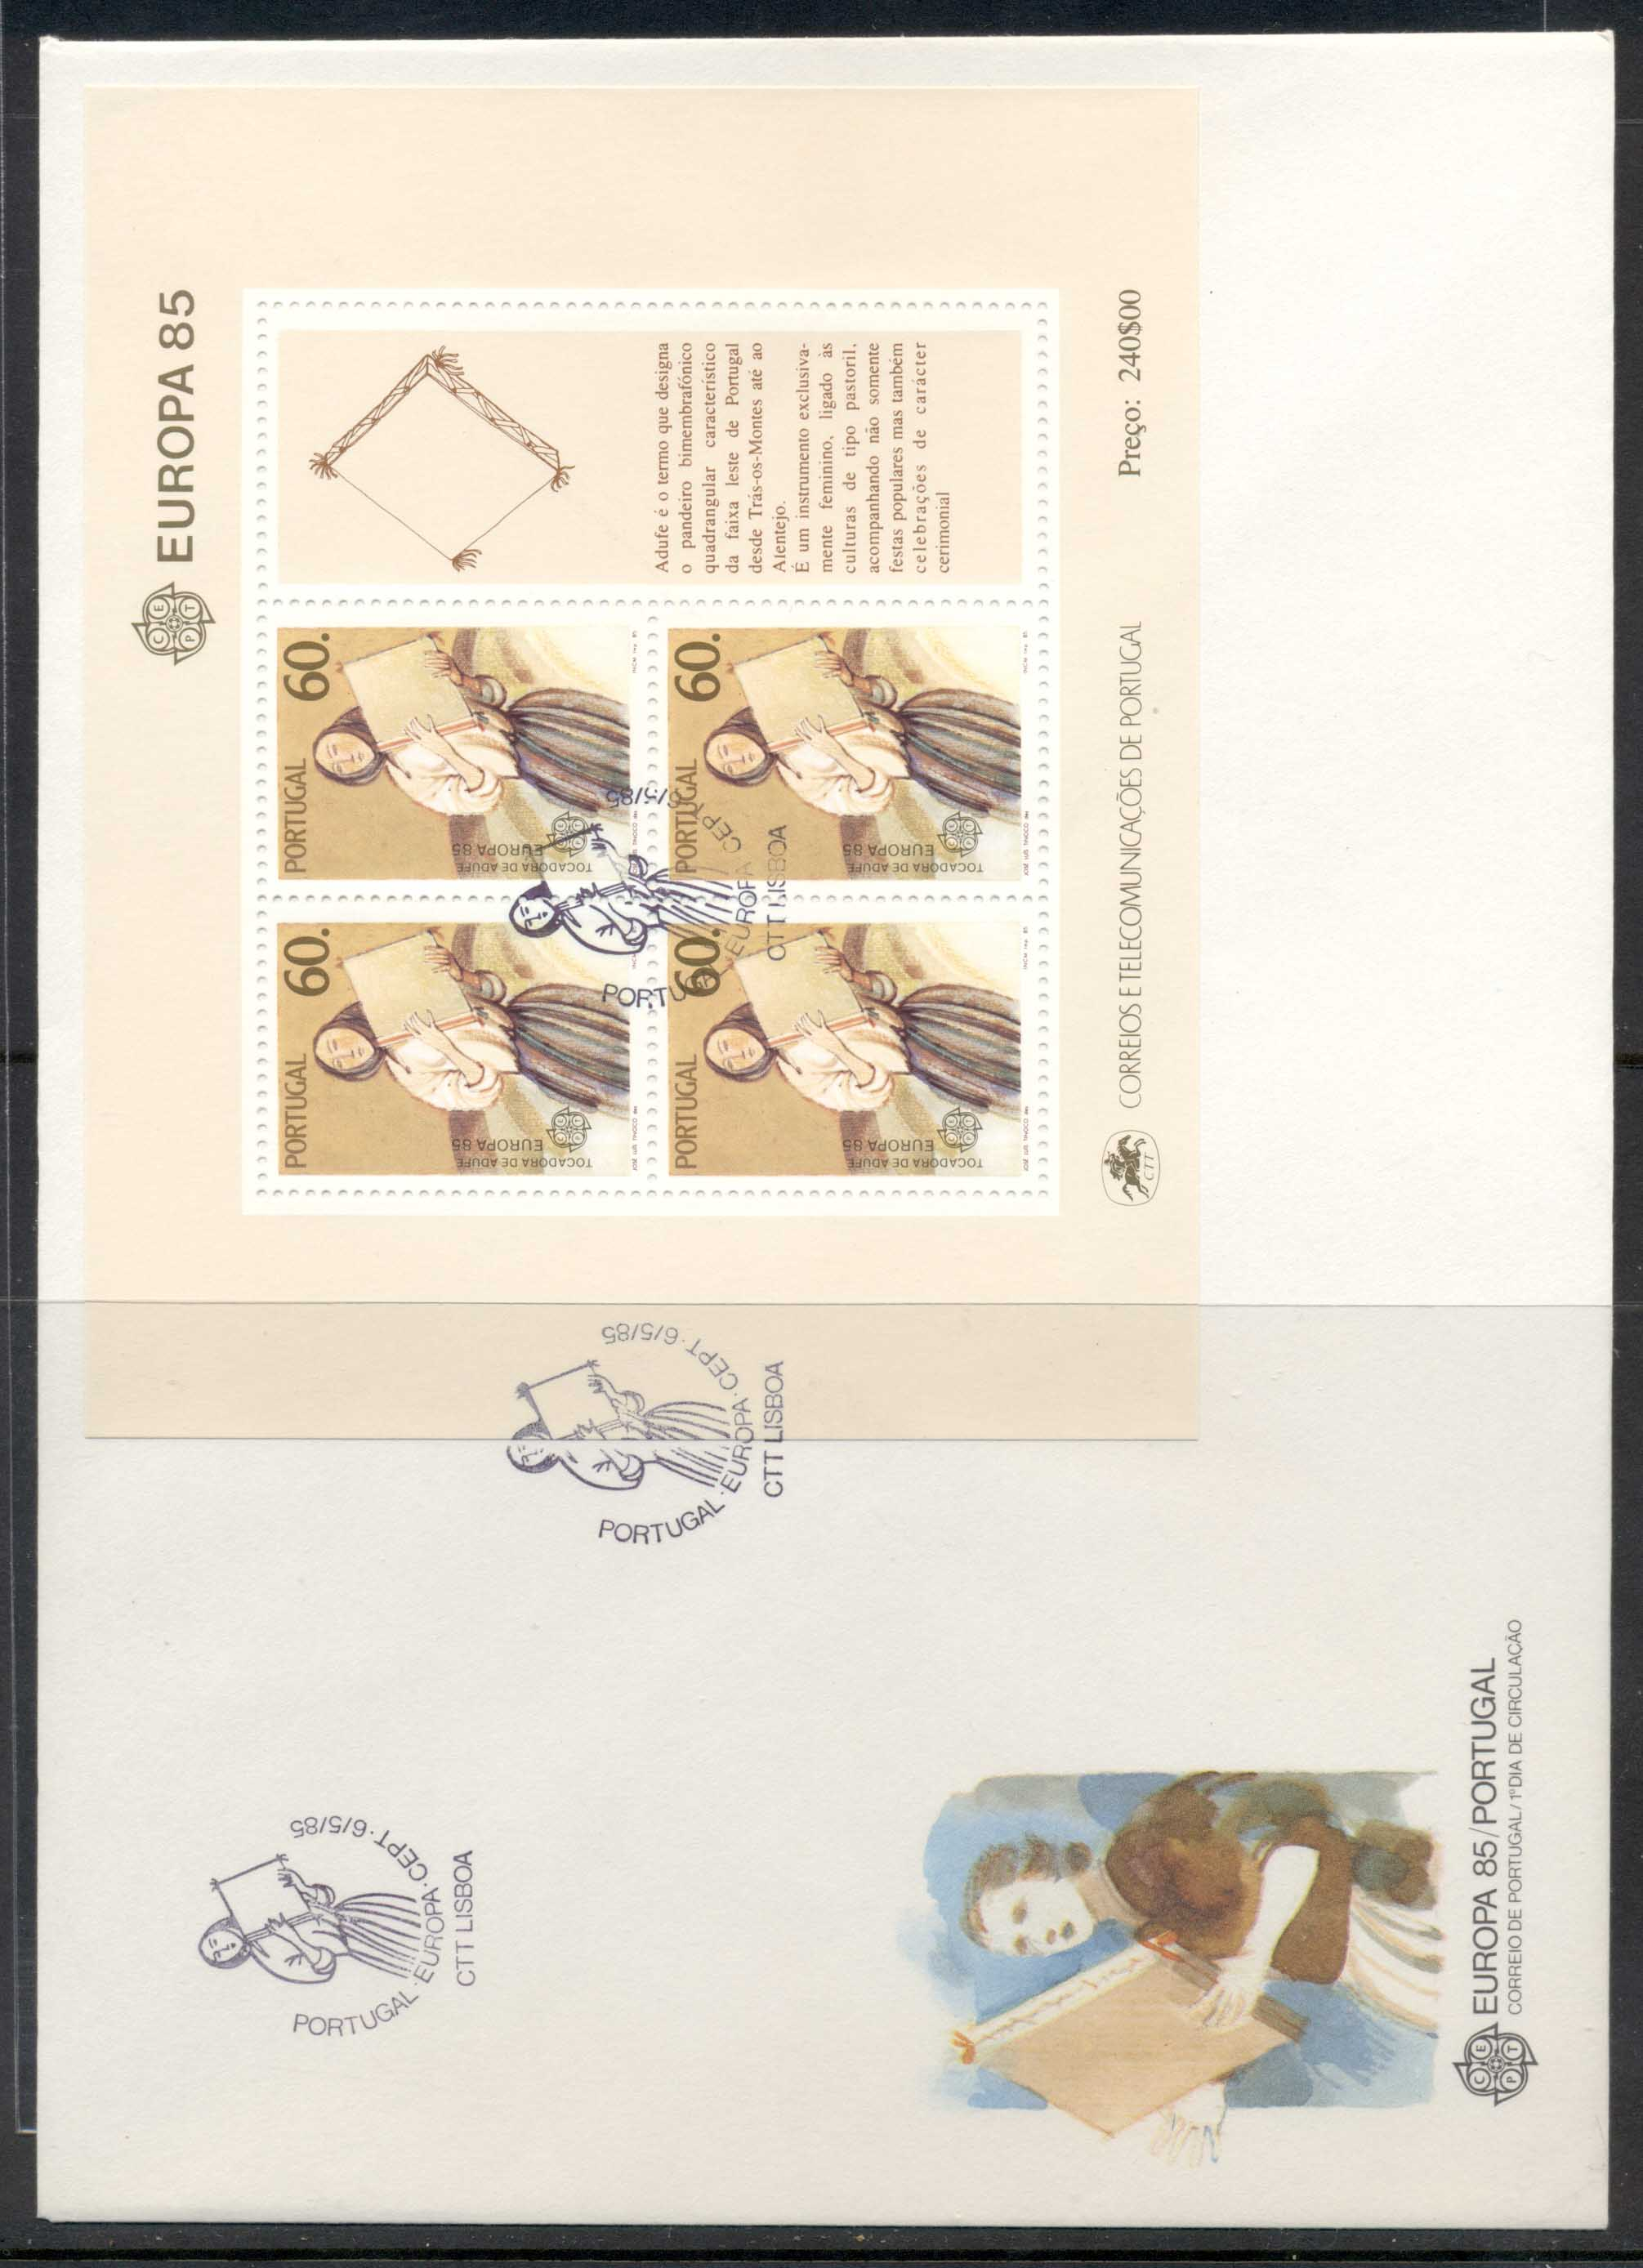 Portugal 1985 Europa Music Year XLMS FDC